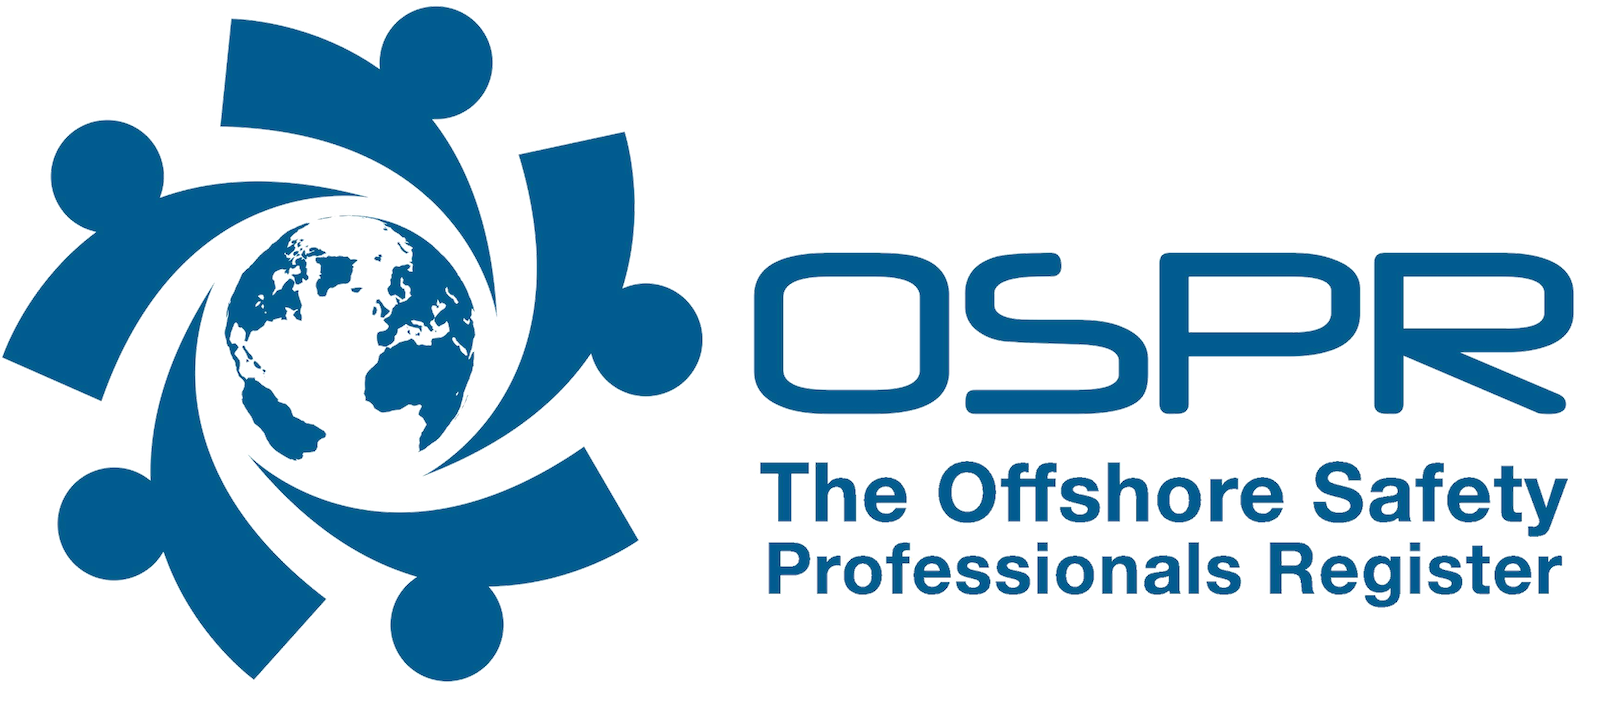 OSPR: The Offshore Safety Professionals Register